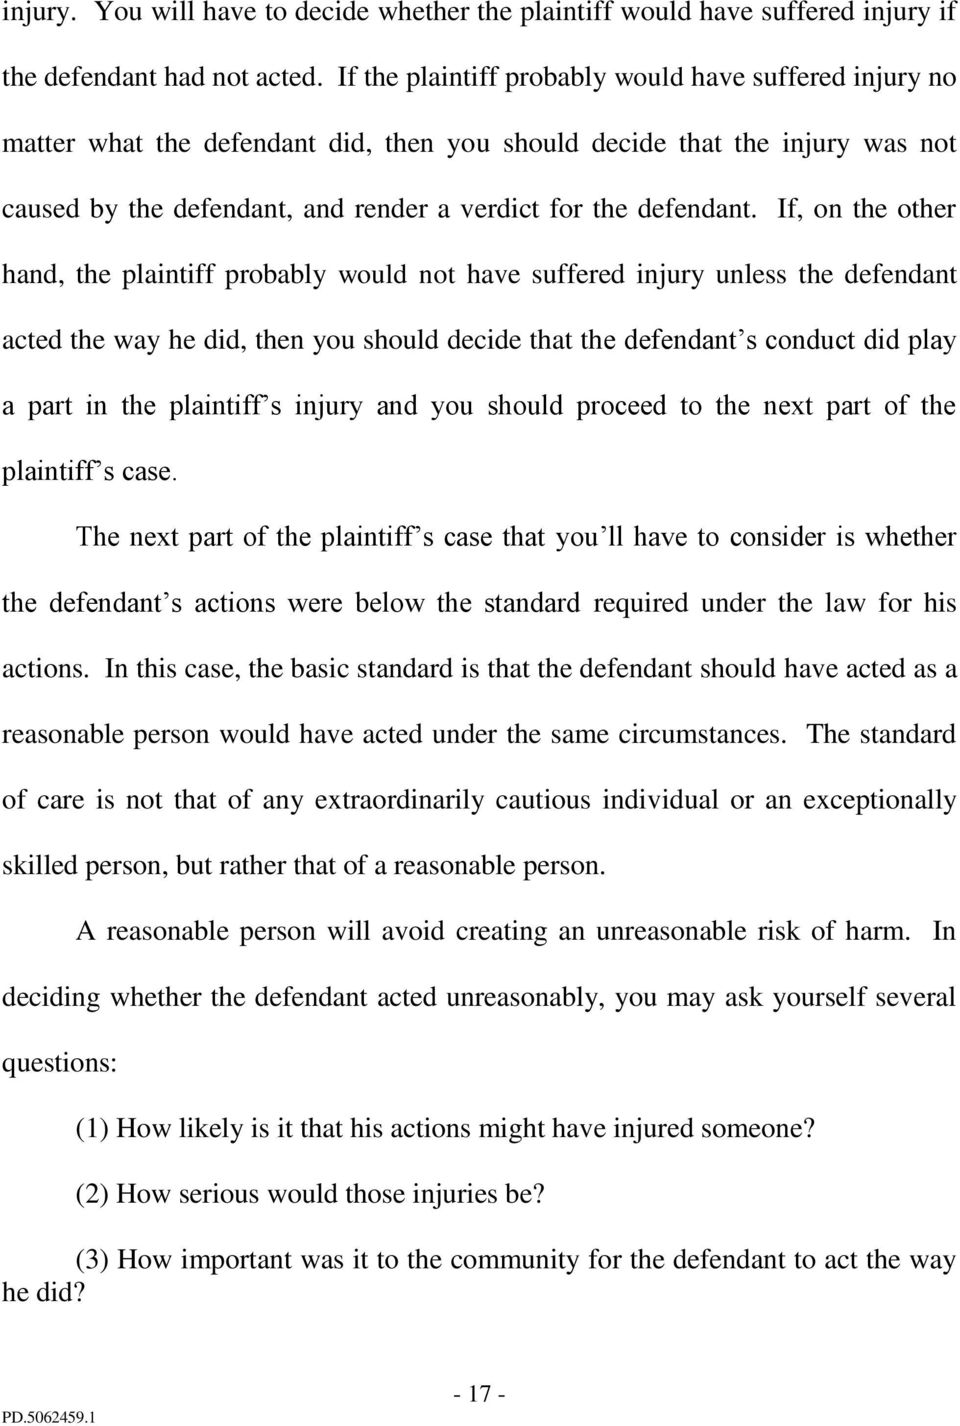 If, on the other hand, the plaintiff probably would not have suffered injury unless the defendant acted the way he did, then you should decide that the defendant s conduct did play a part in the